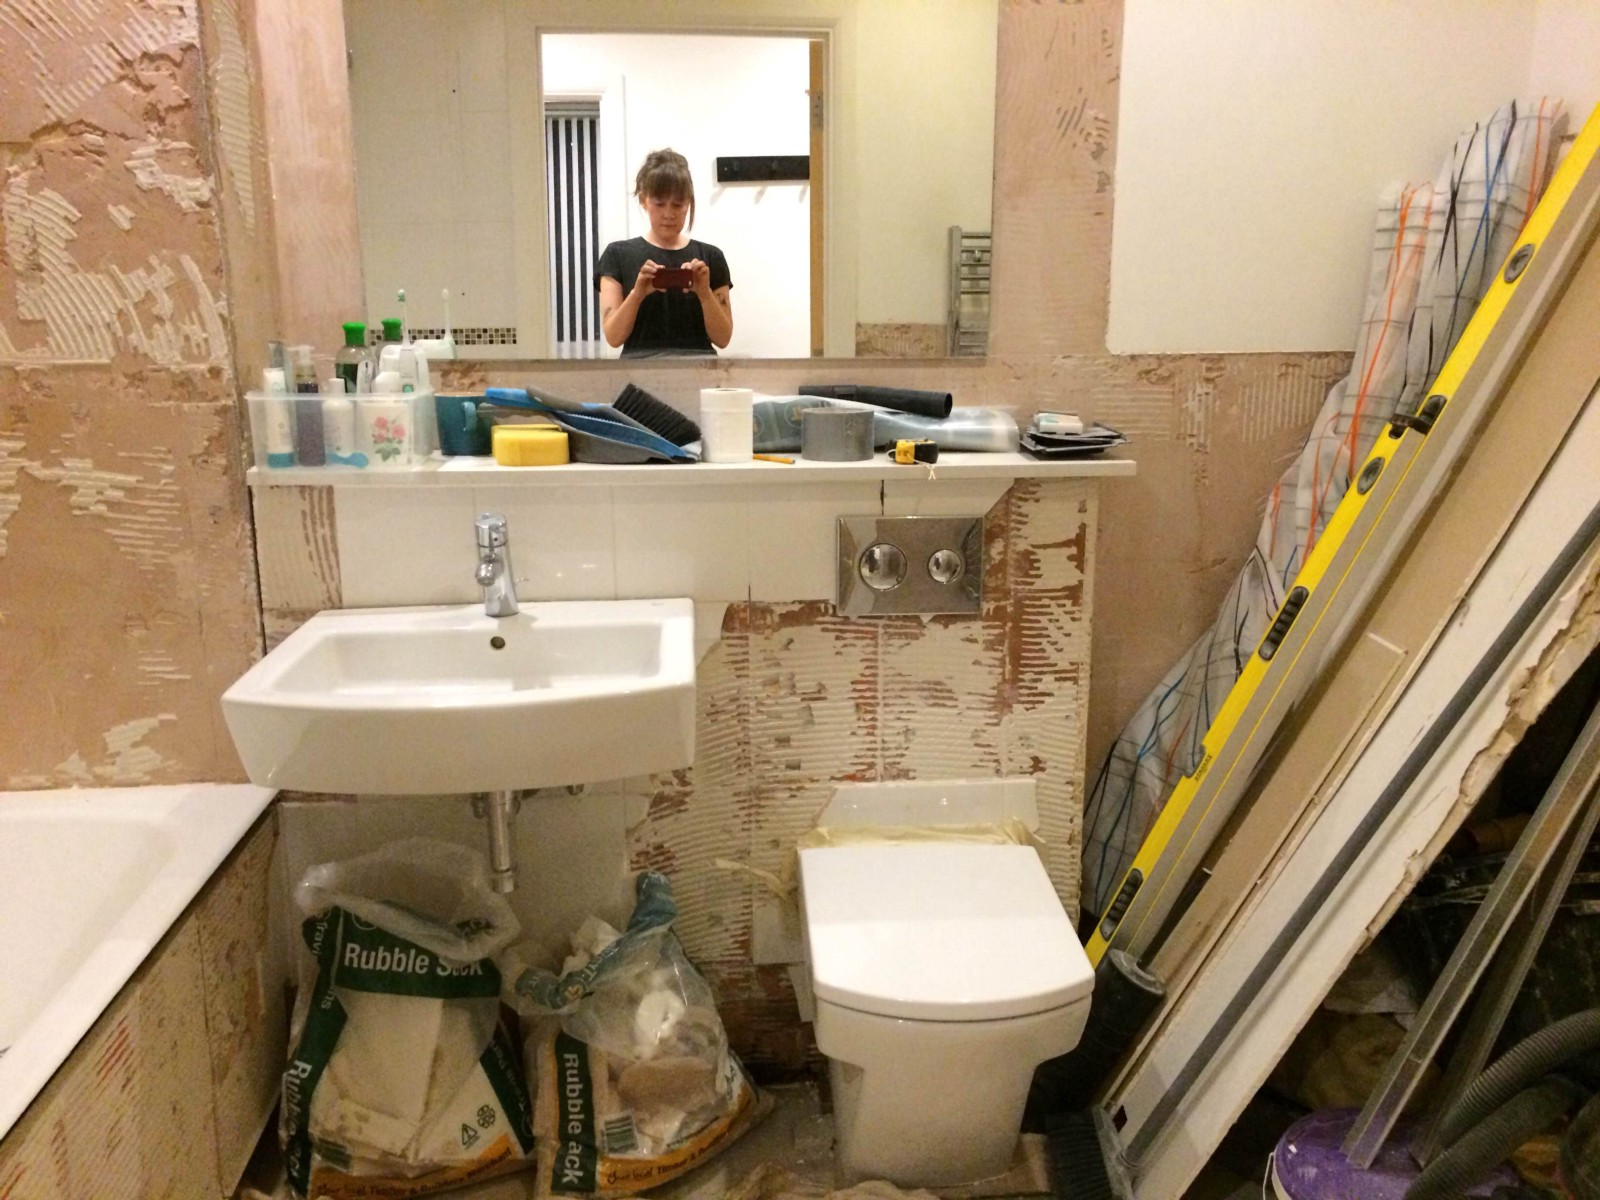 How To Fix A Leak In Your New Bathroom The Billfold Medium - Plumbing a new bathroom